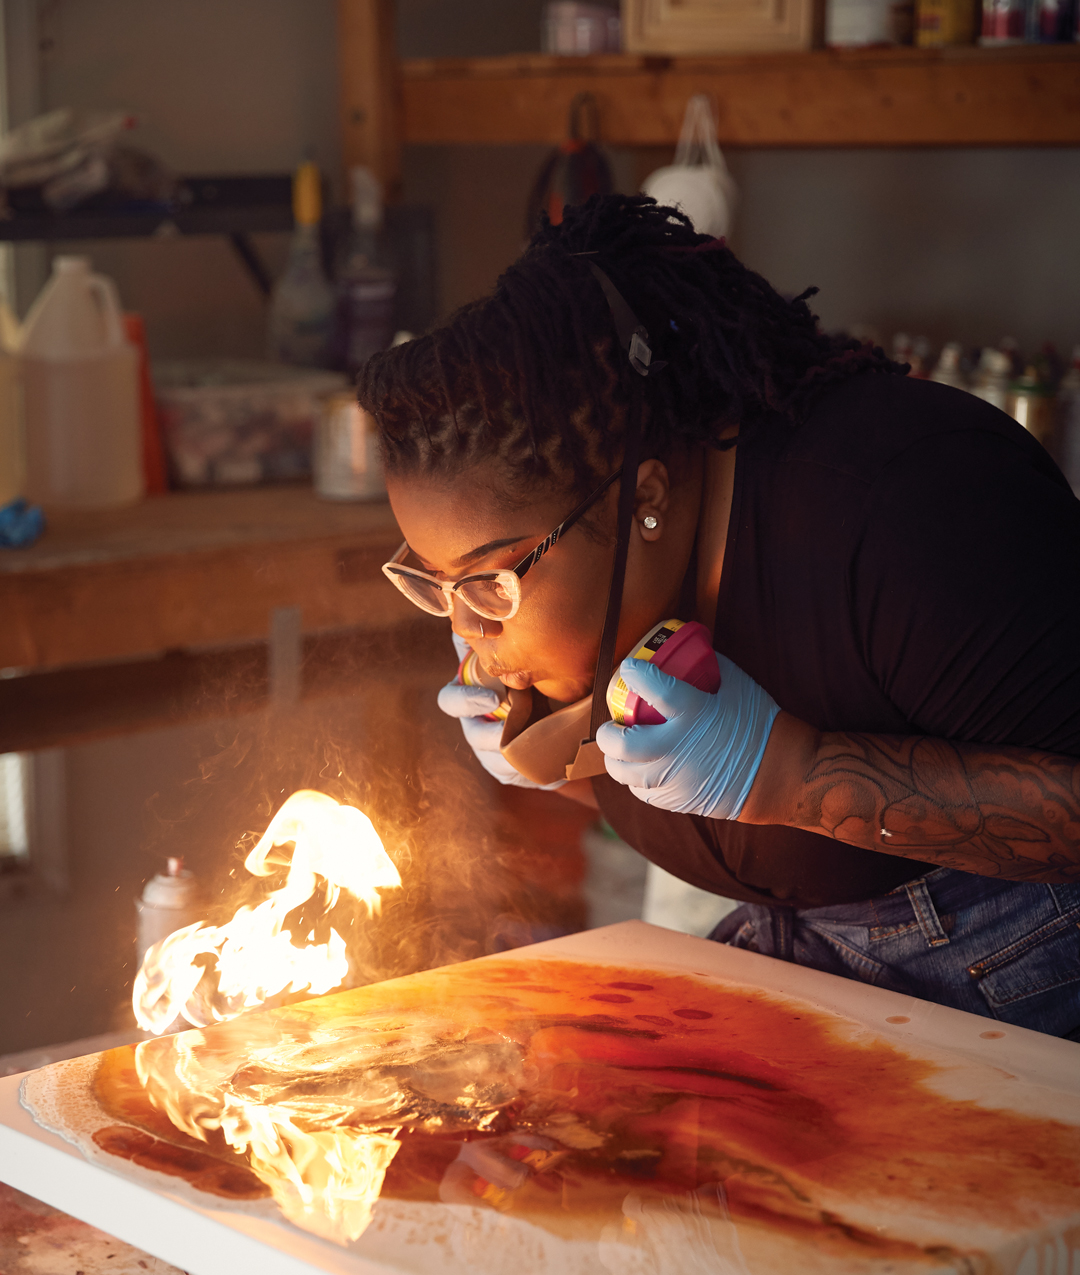 Flame thrower: Lawrenceville artist Erica Elle uses a blowtorch to create her vibrant paintings